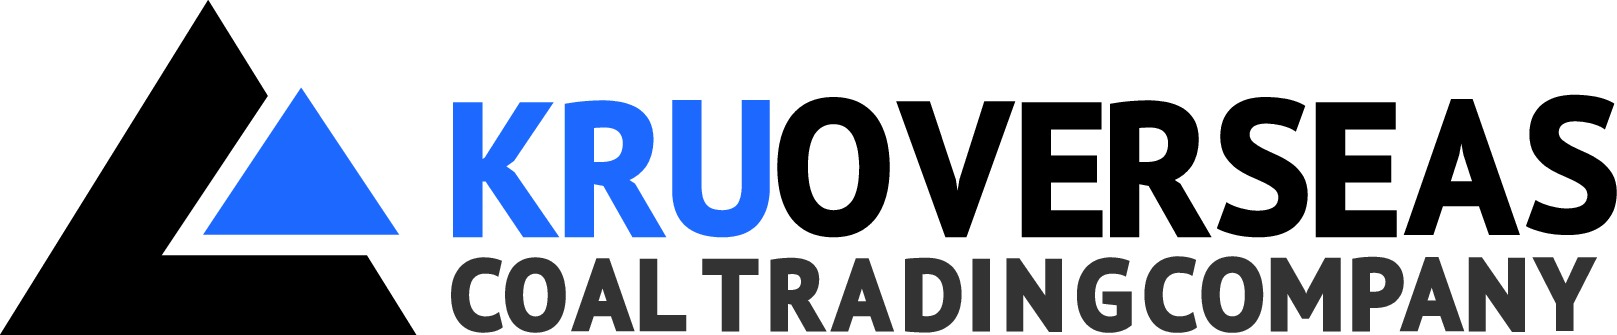 KRU Overseas Ltd